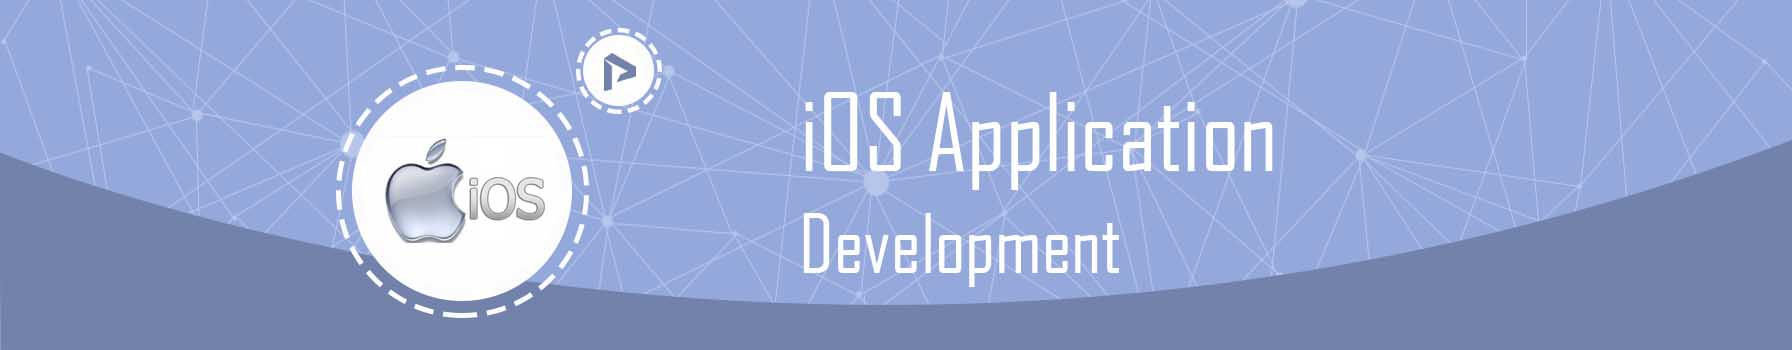 ios-application-development.jpg